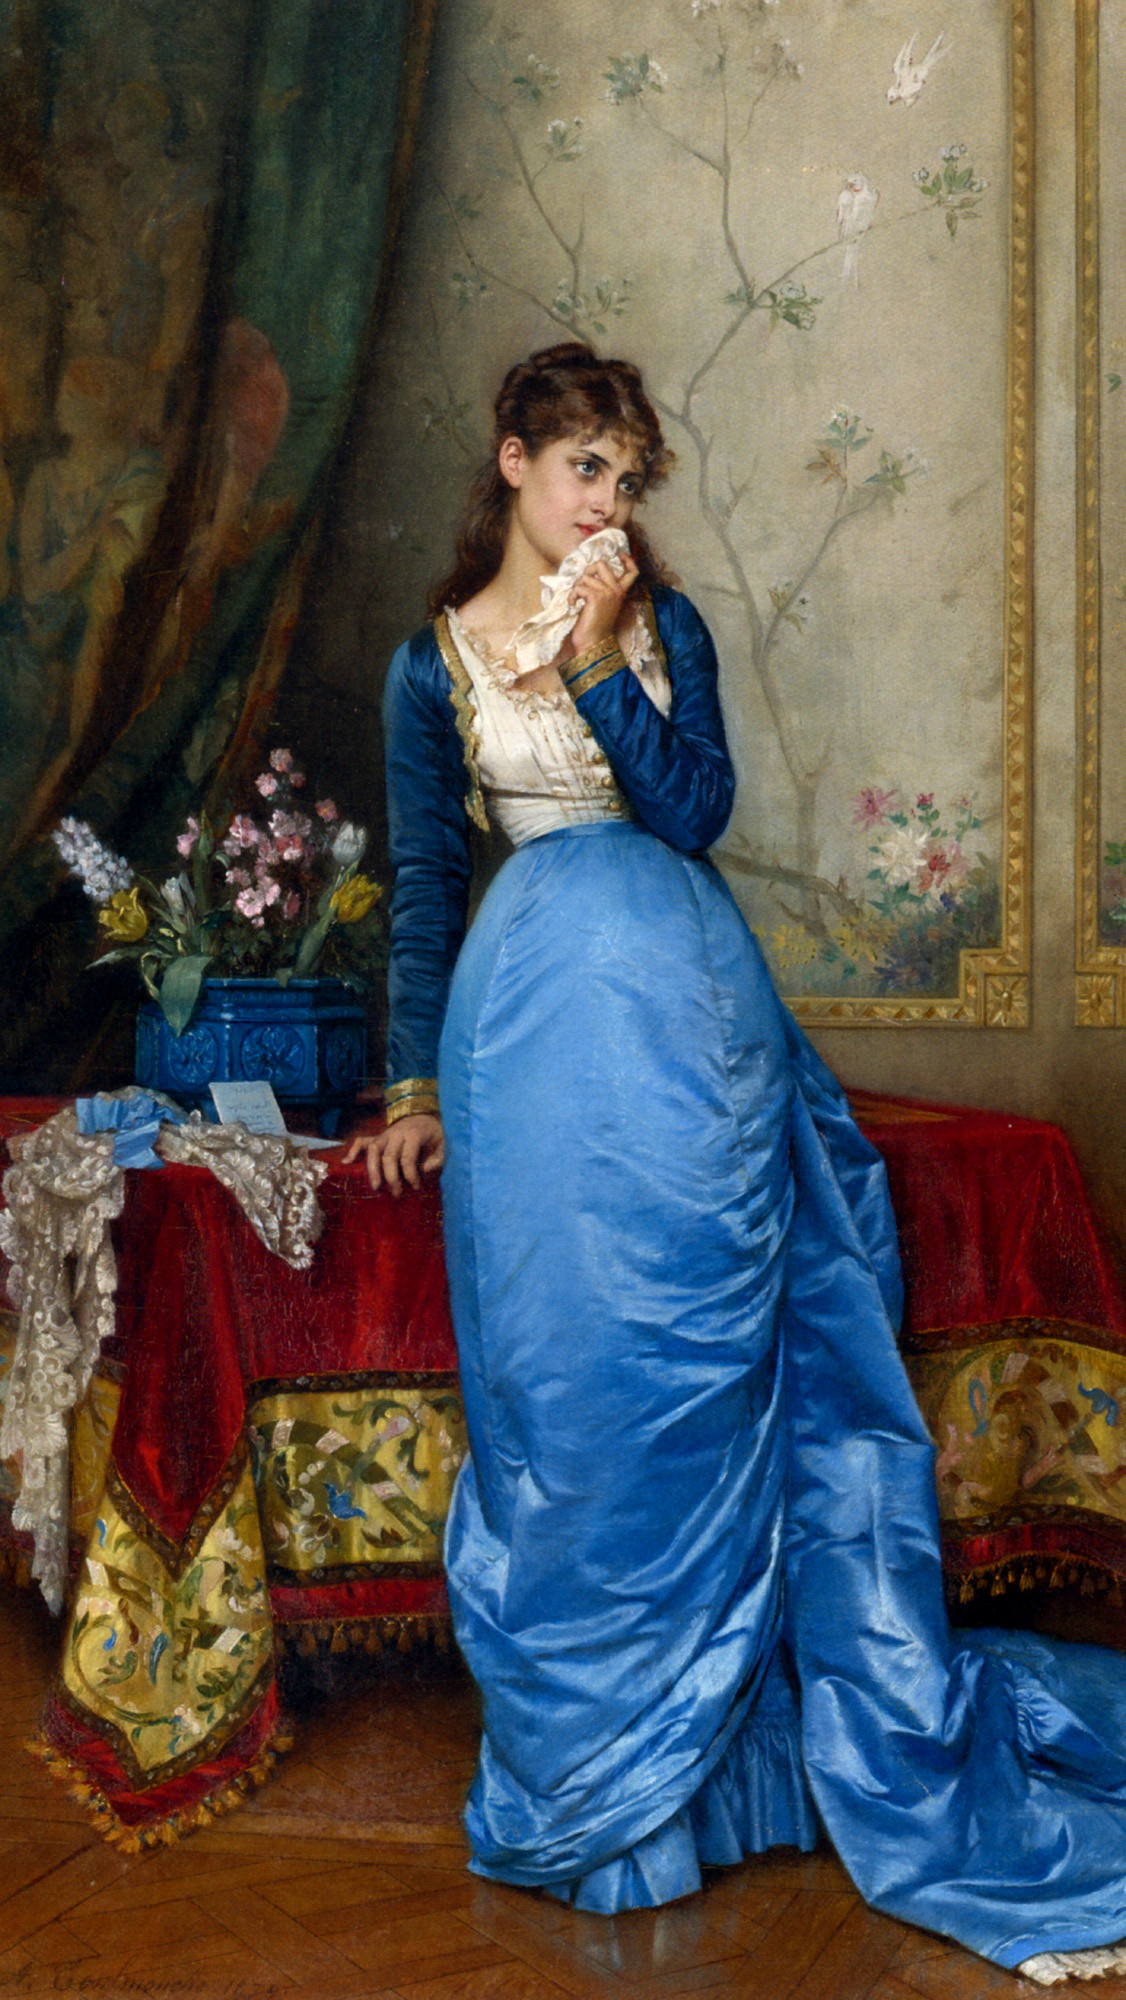 The Letter by Auguste Toulmouche, 1879